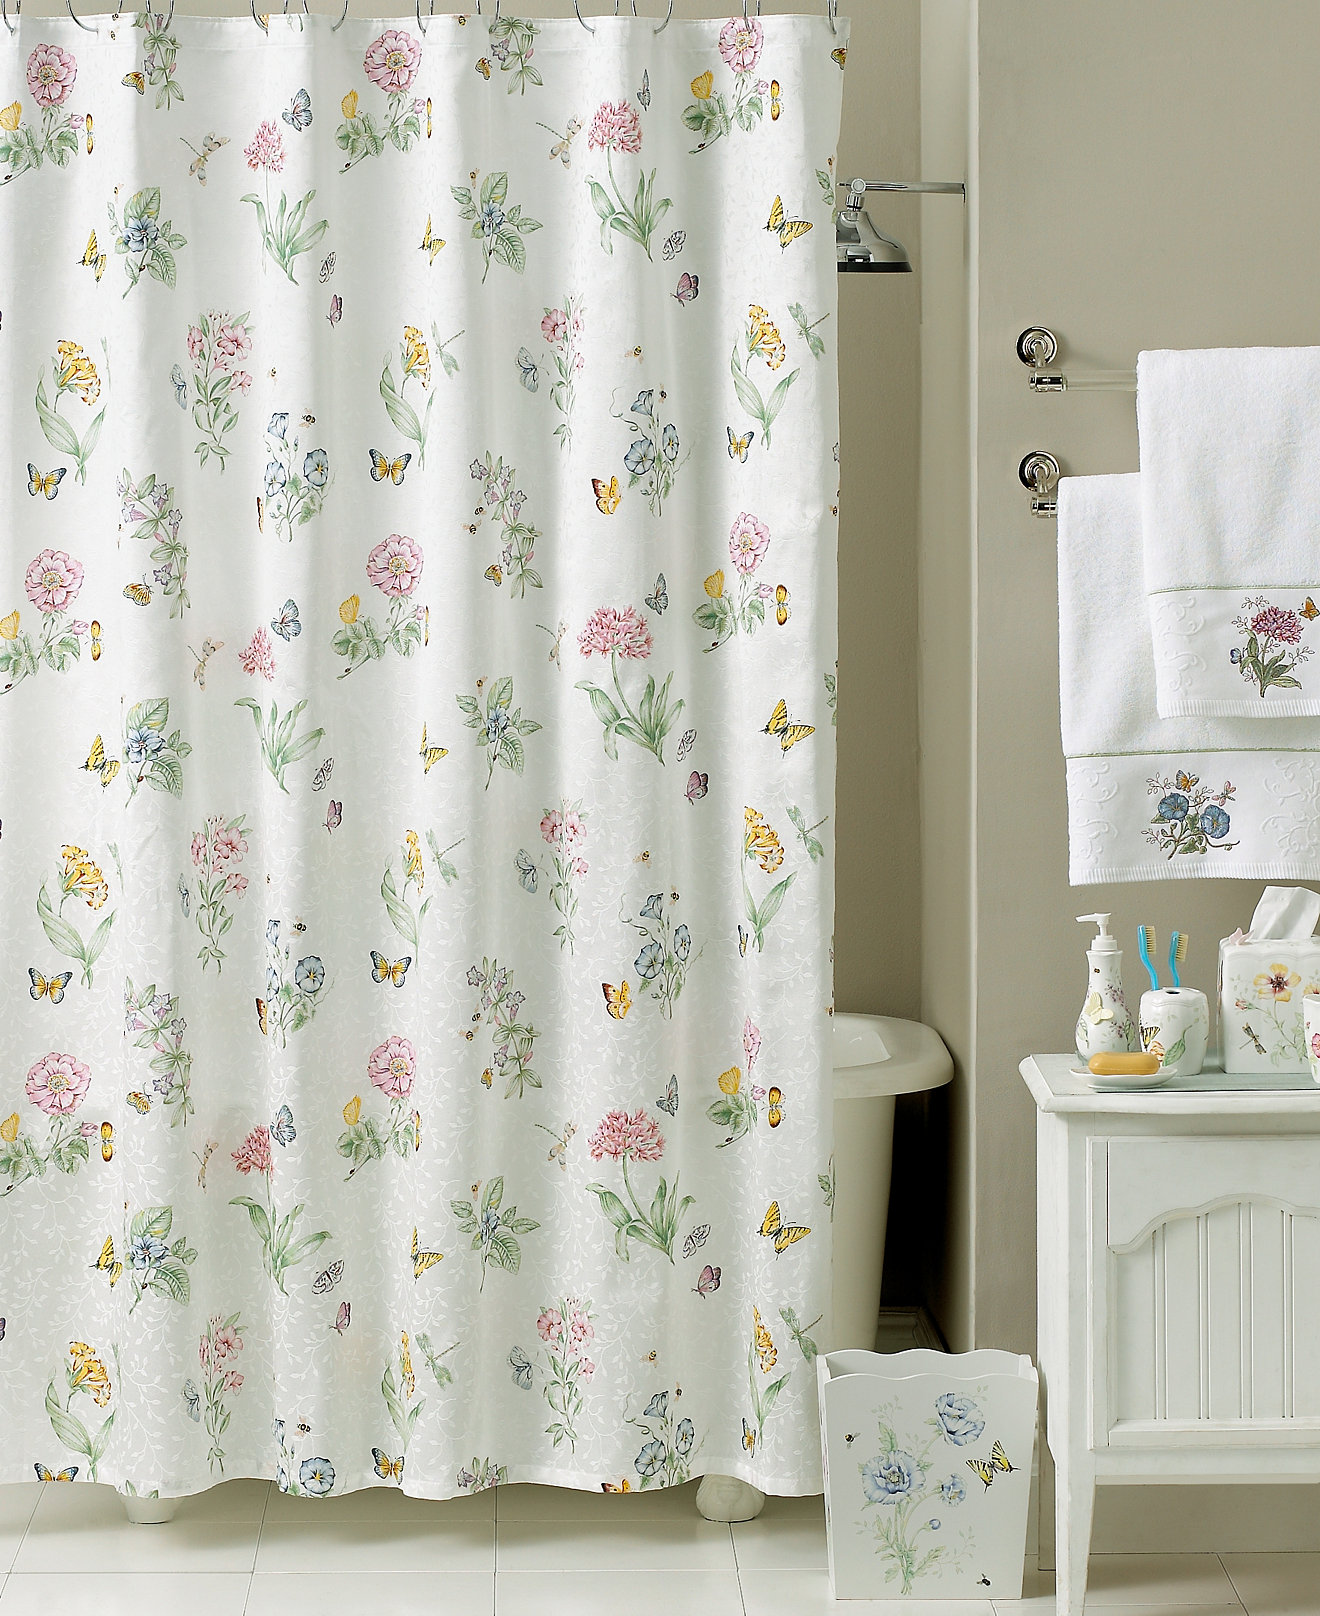 Mint green shower curtain and rugs - Lenox Butterfly Meadow Shower Curtain Bath Collection Bathroom Accessories Bed Bath Macy S